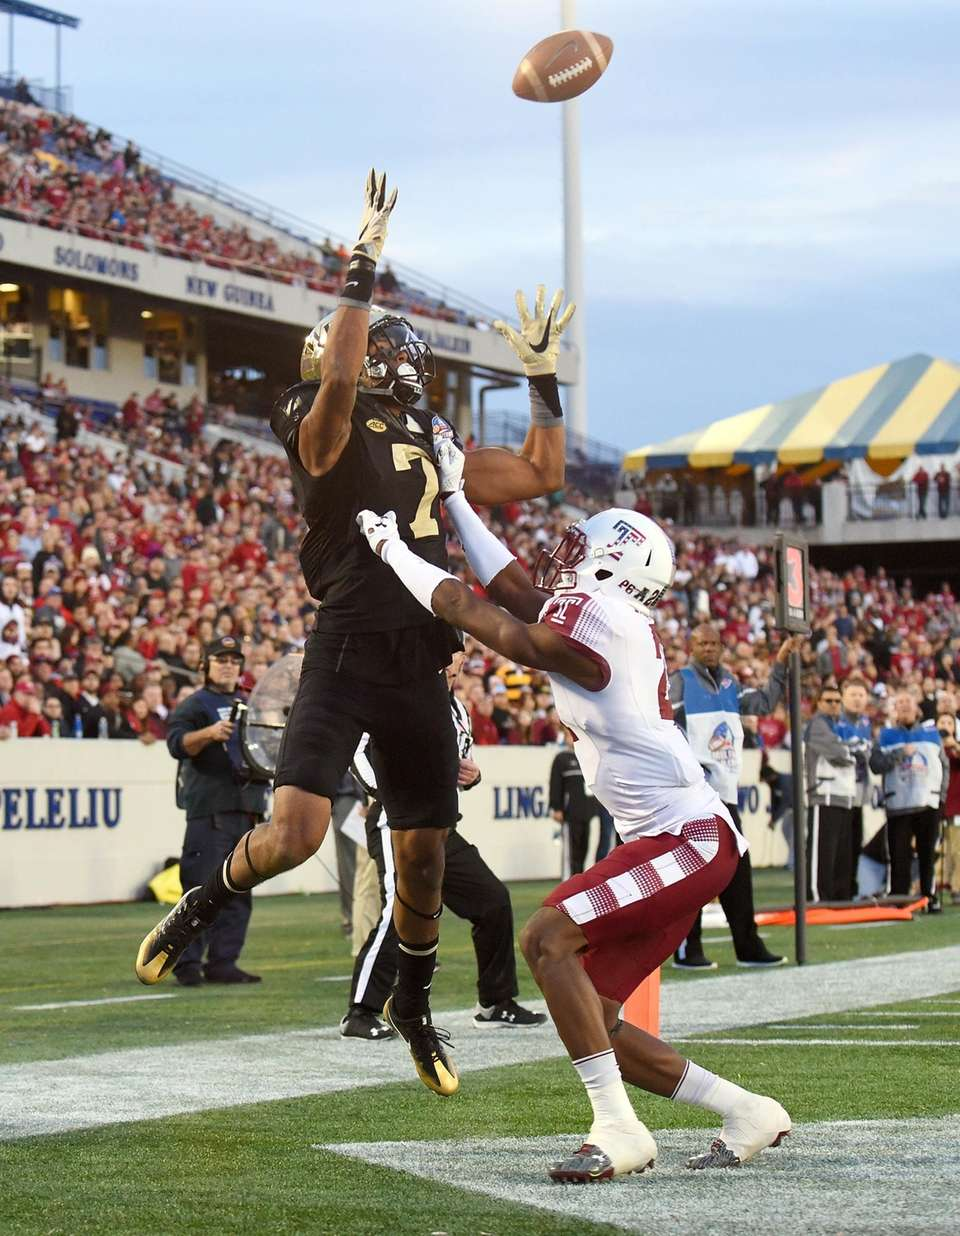 Wake Forest 34, Temple 26 Date: Dec. 27,